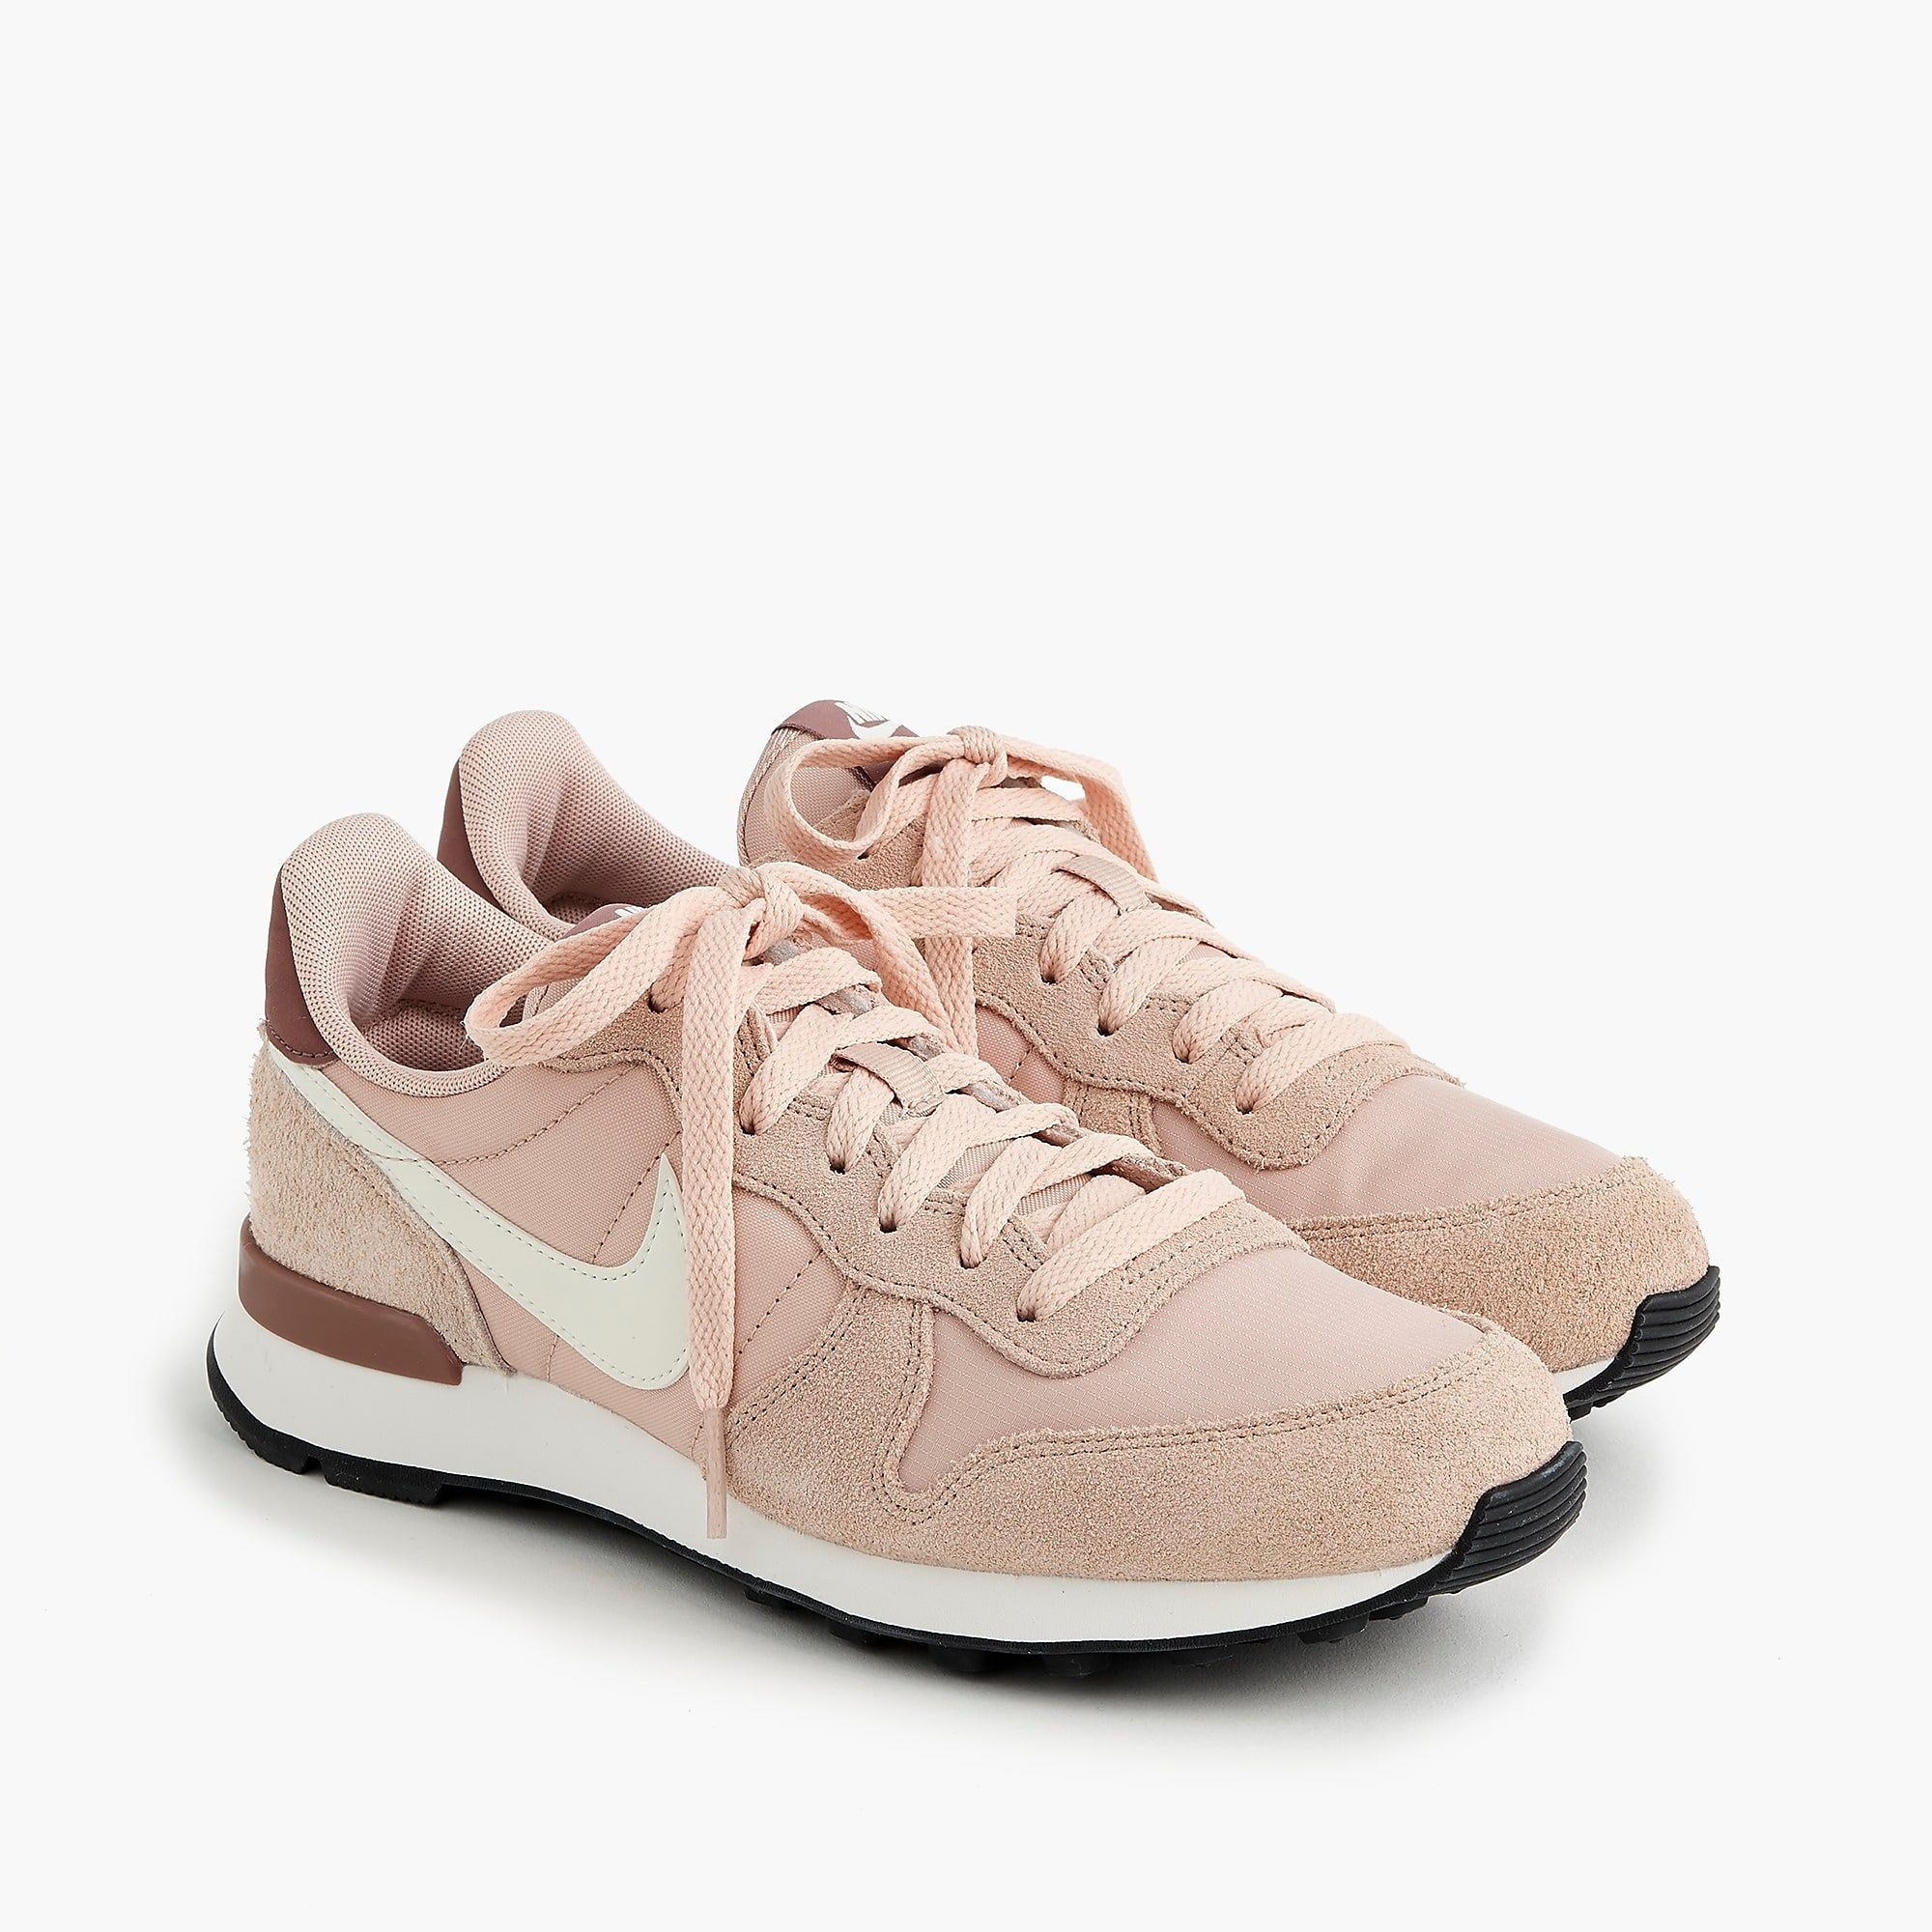 fashion styles online retailer latest design Shop the Women's Nike Internationalist sneakers at J.Crew ...